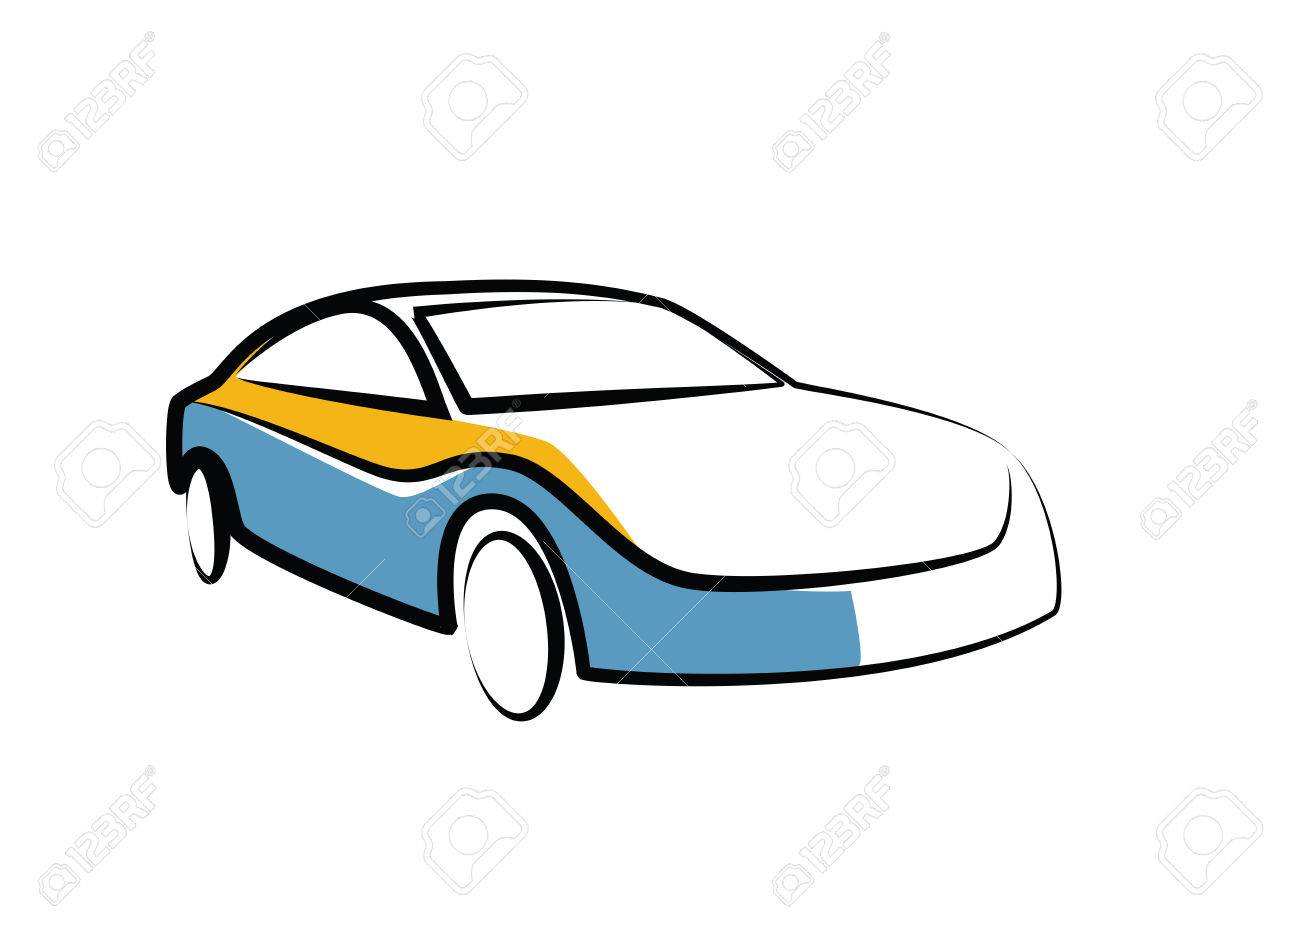 Simple Drawing Of A Modern Sports Car - Auto Sketch Royalty Free ...